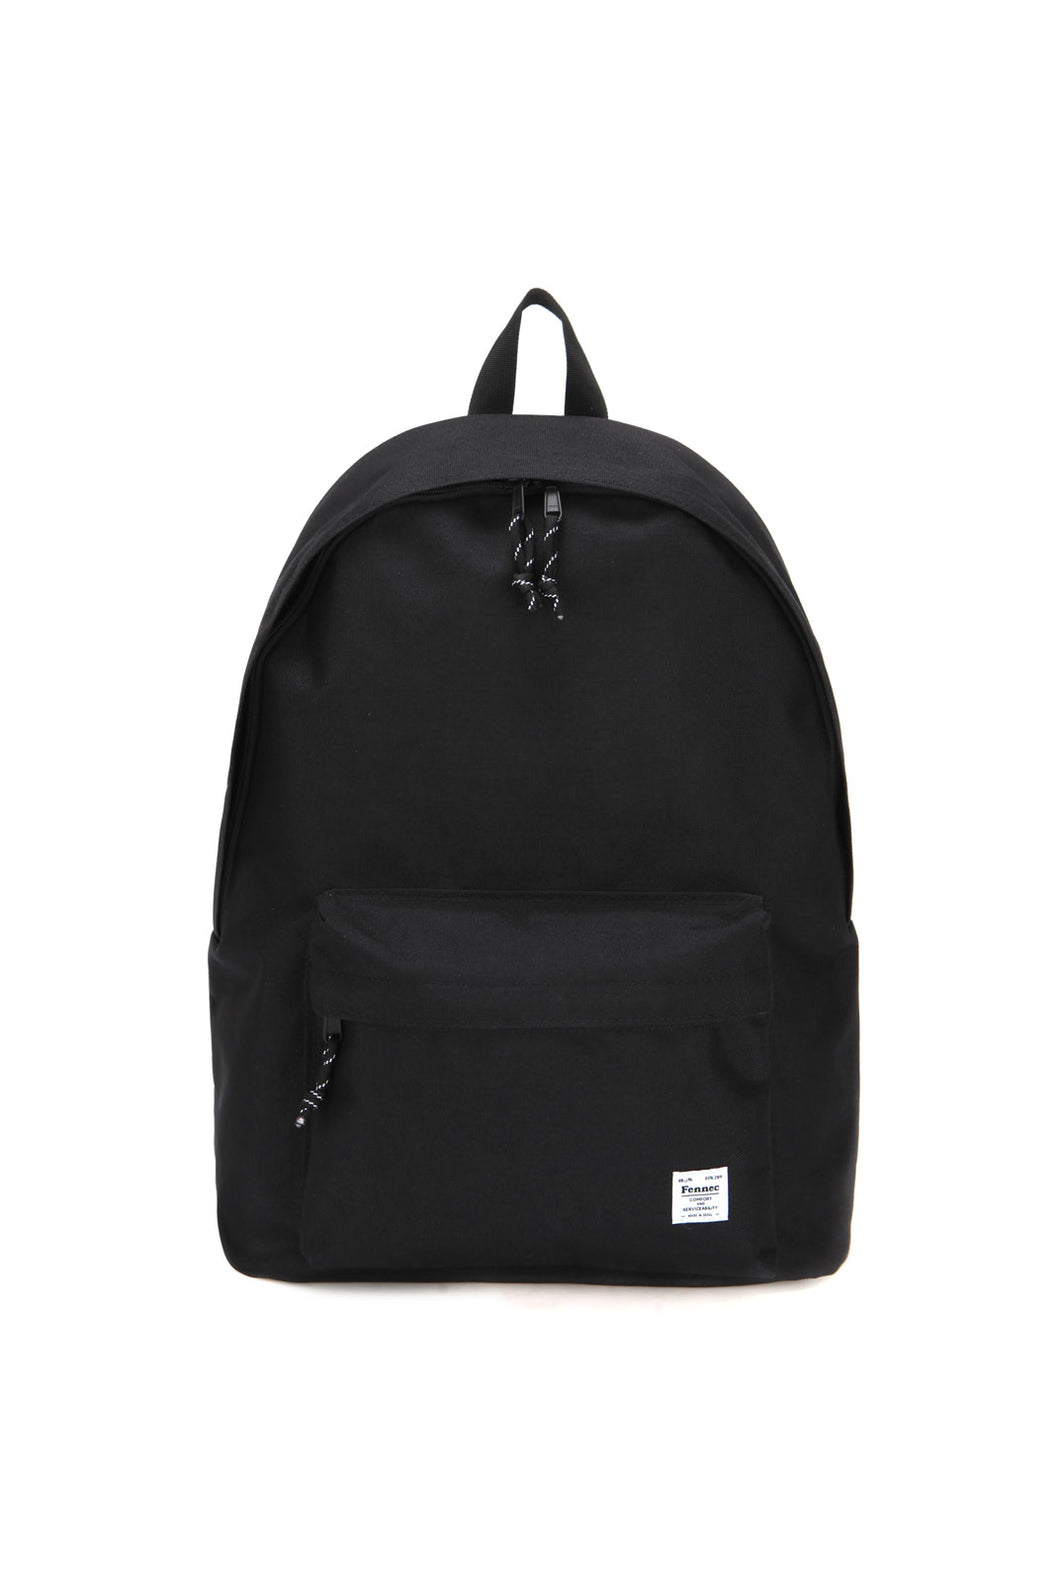 Fennec - C & S - Backpack - Black